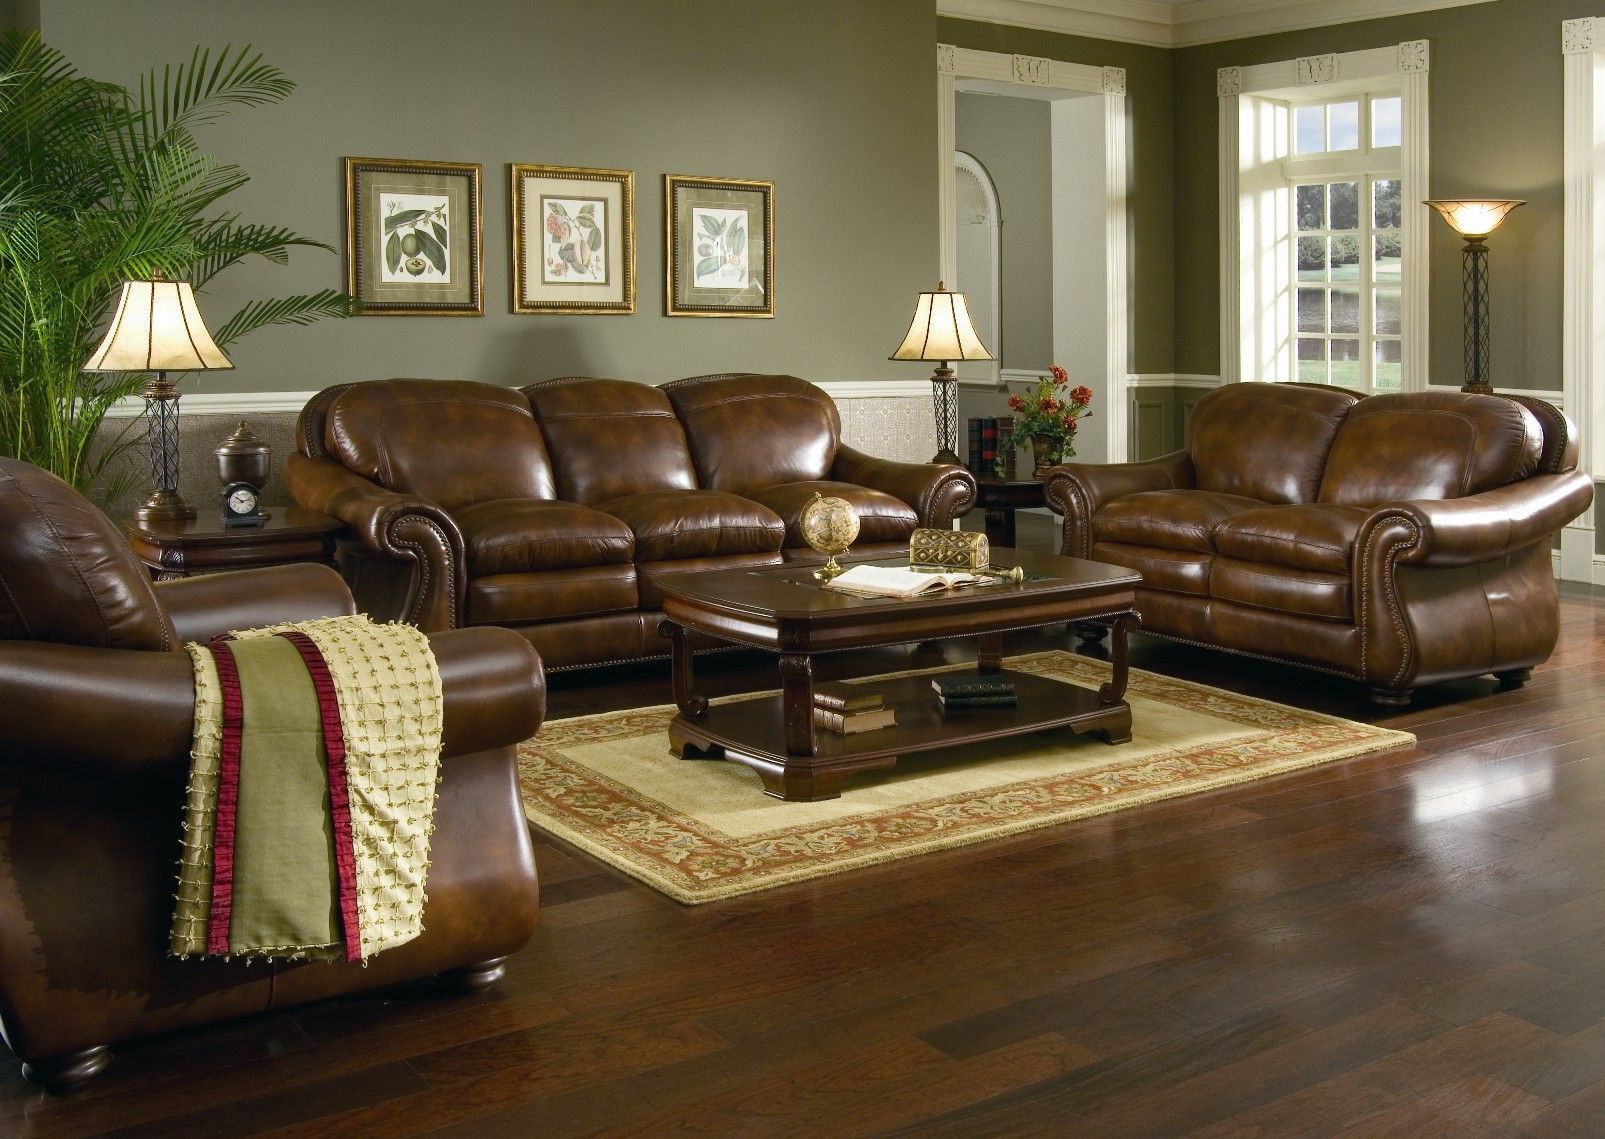 Best Brown Leather Sofa Set For Living Room With Dark Hardwood Floors Leather Sofa Living Room 400 x 300